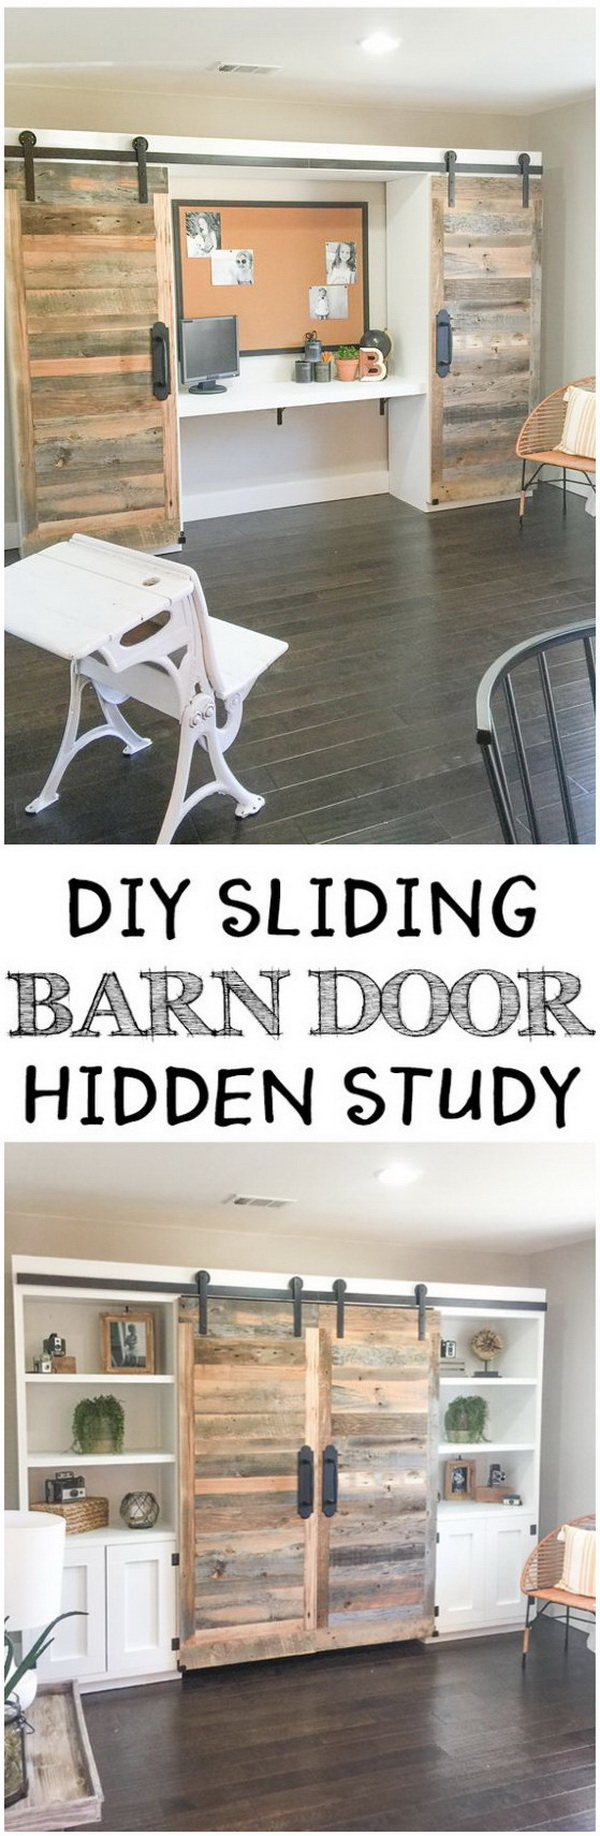 Rustic DIY Sliding Barn Doors. Upcycle an old door from a salvage shop and the materials into a sliding barn door hidden desk system! It saves much space and can also add a charming rustic look to your home. Perfect home office piece!